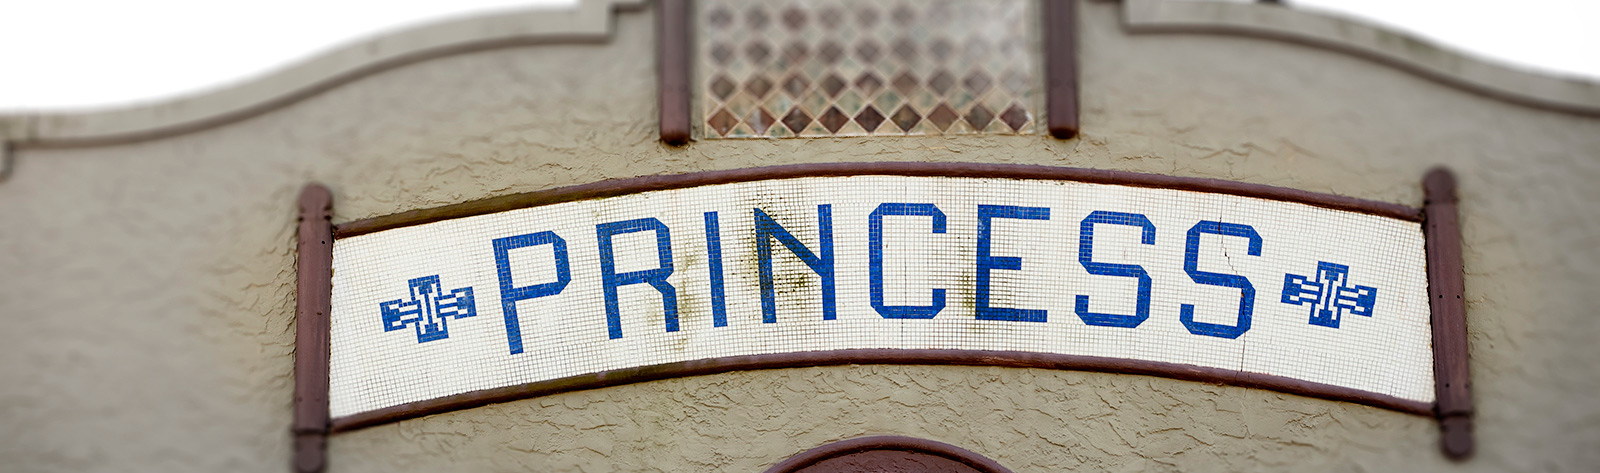 mosaic sign for Princess building